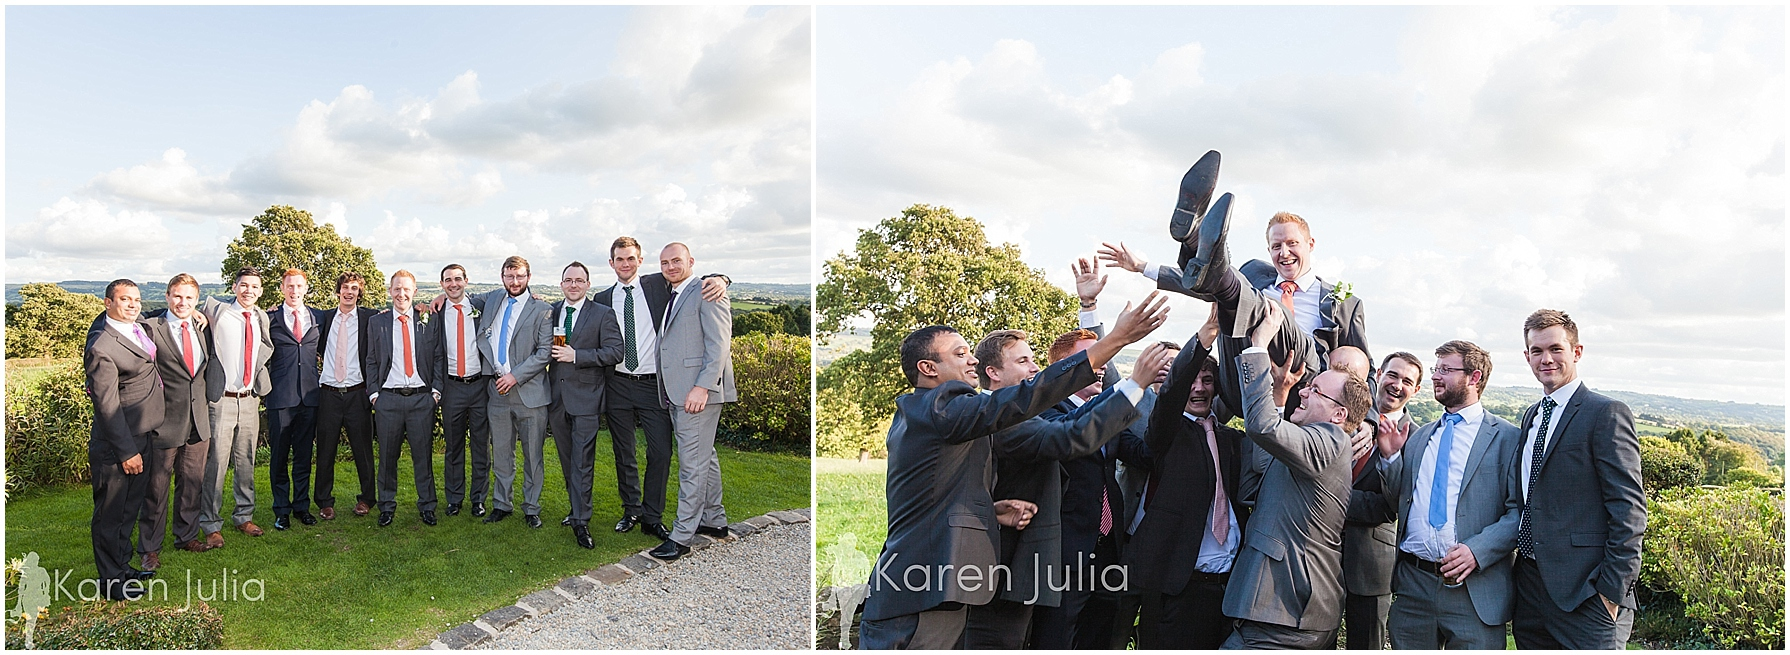 Shireburn-Arms-Wedding-Photography-48